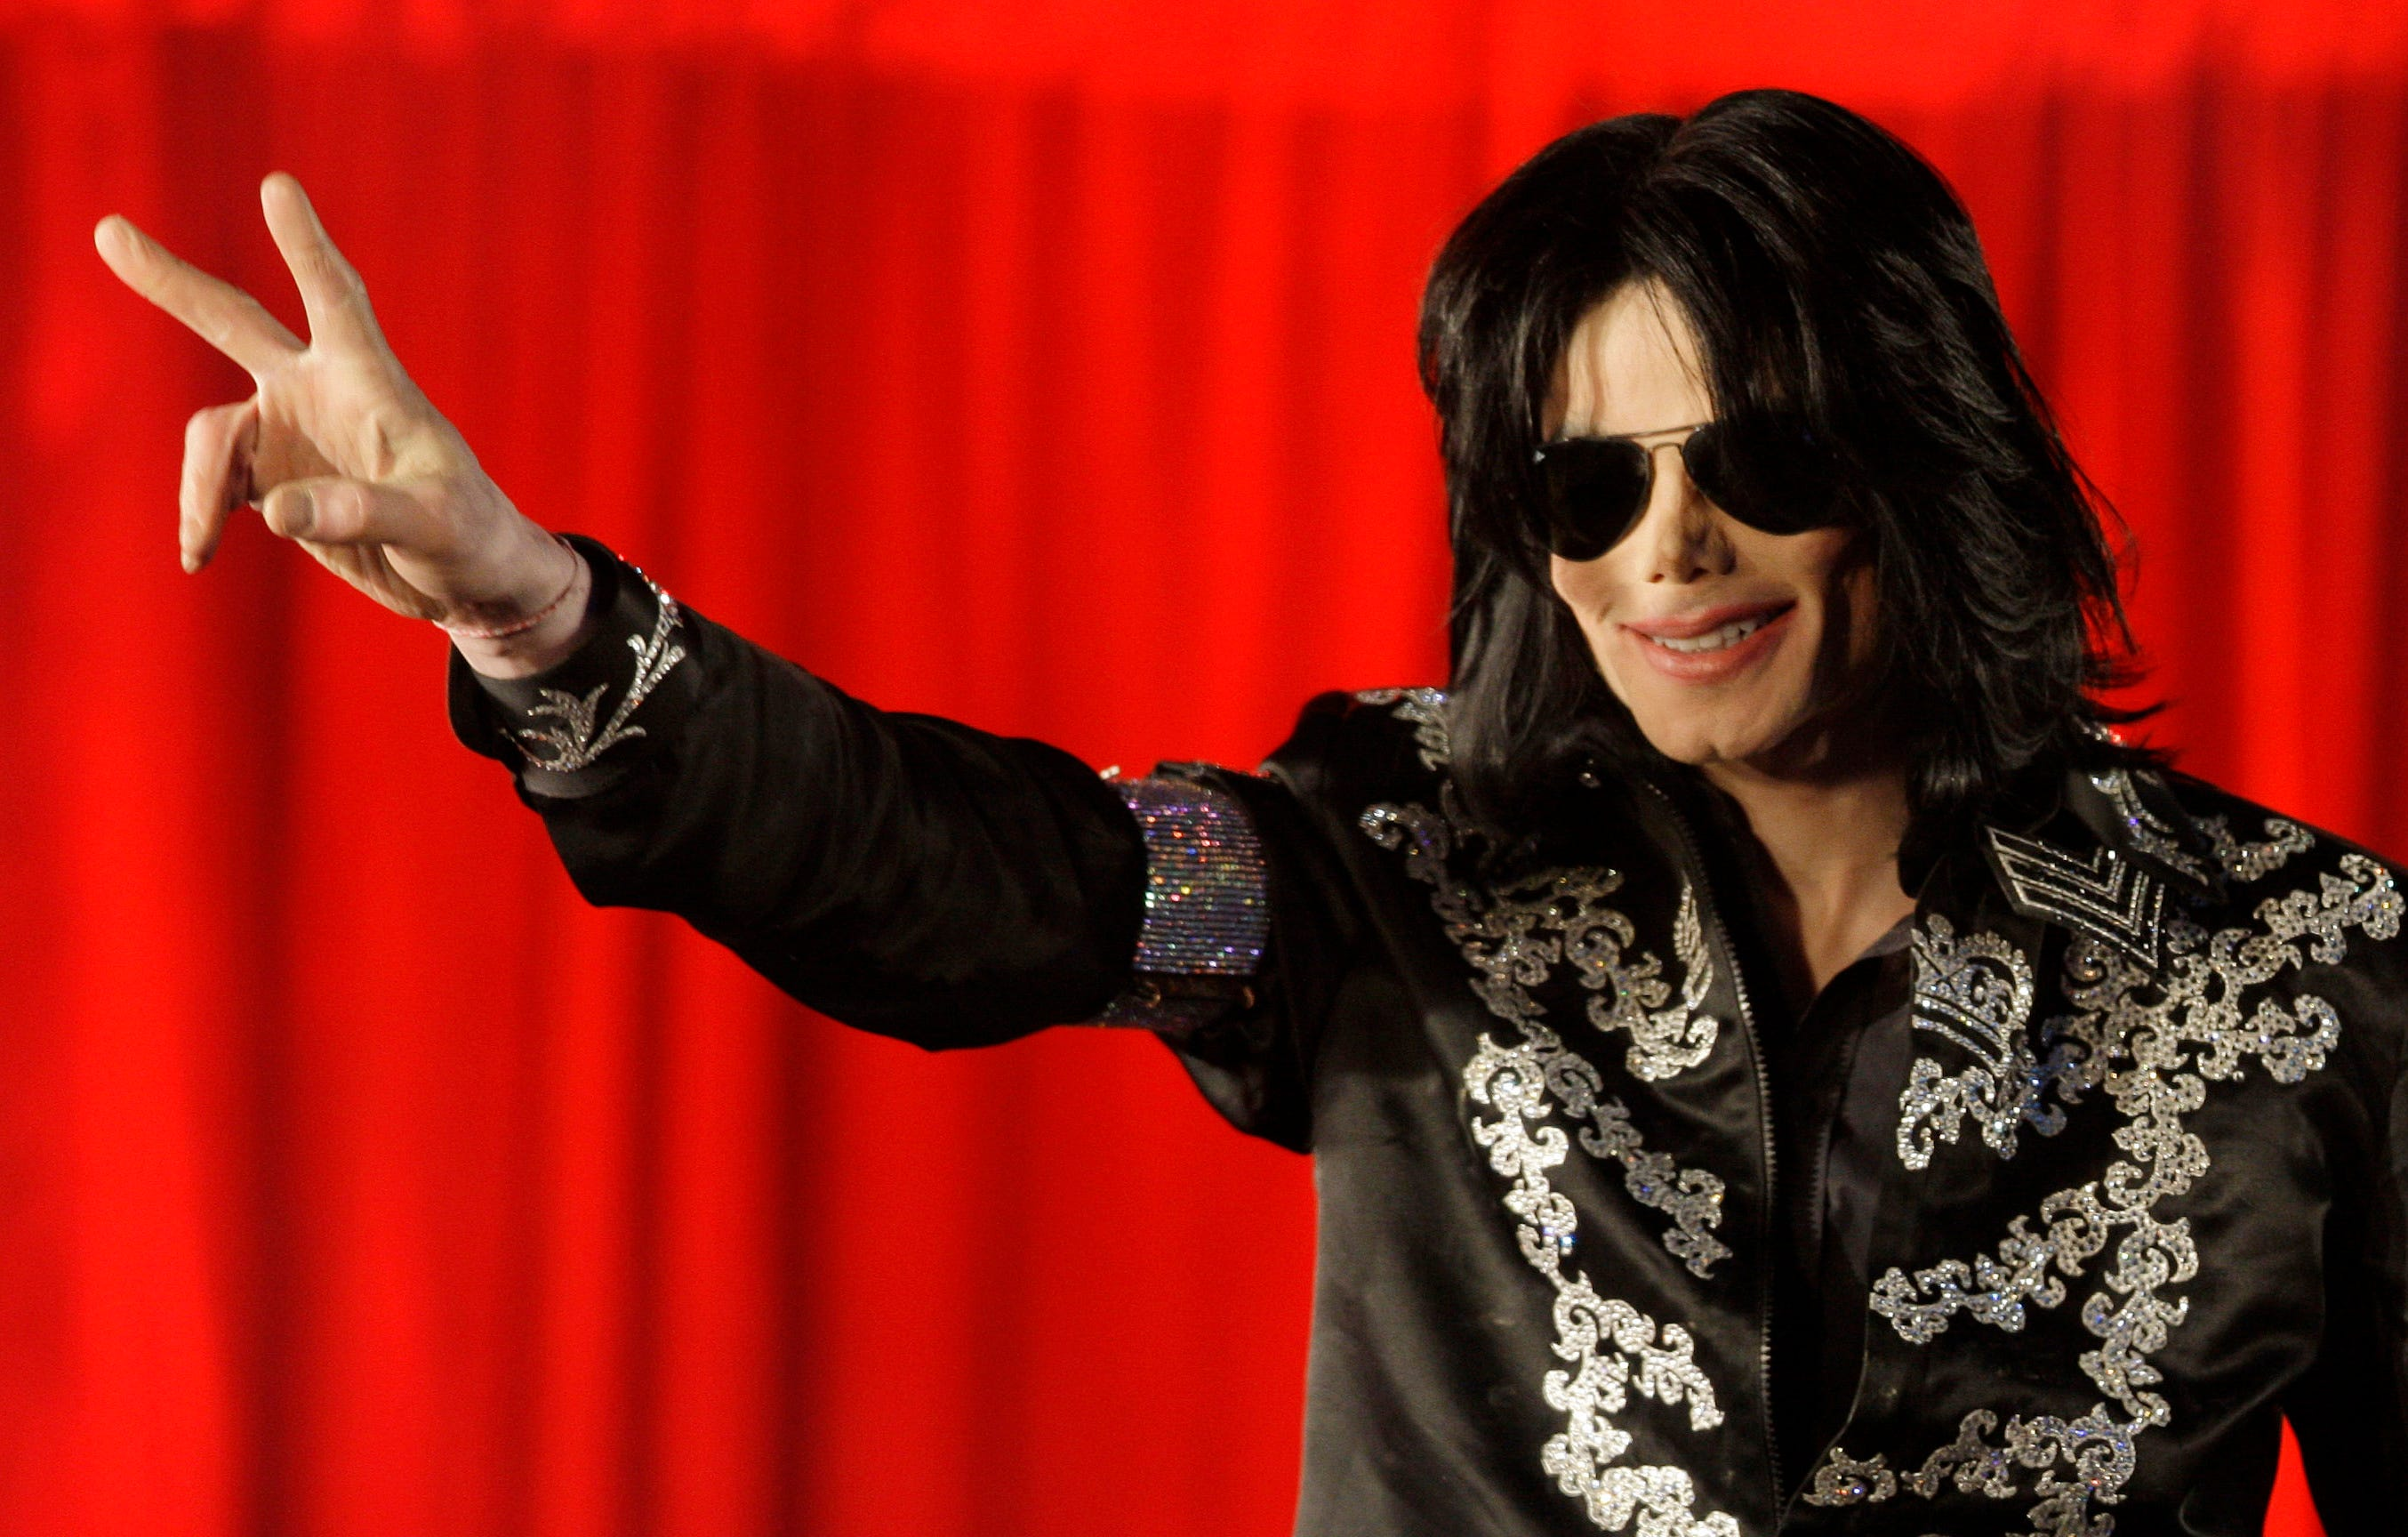 Michael Jackson would have turned 59 today